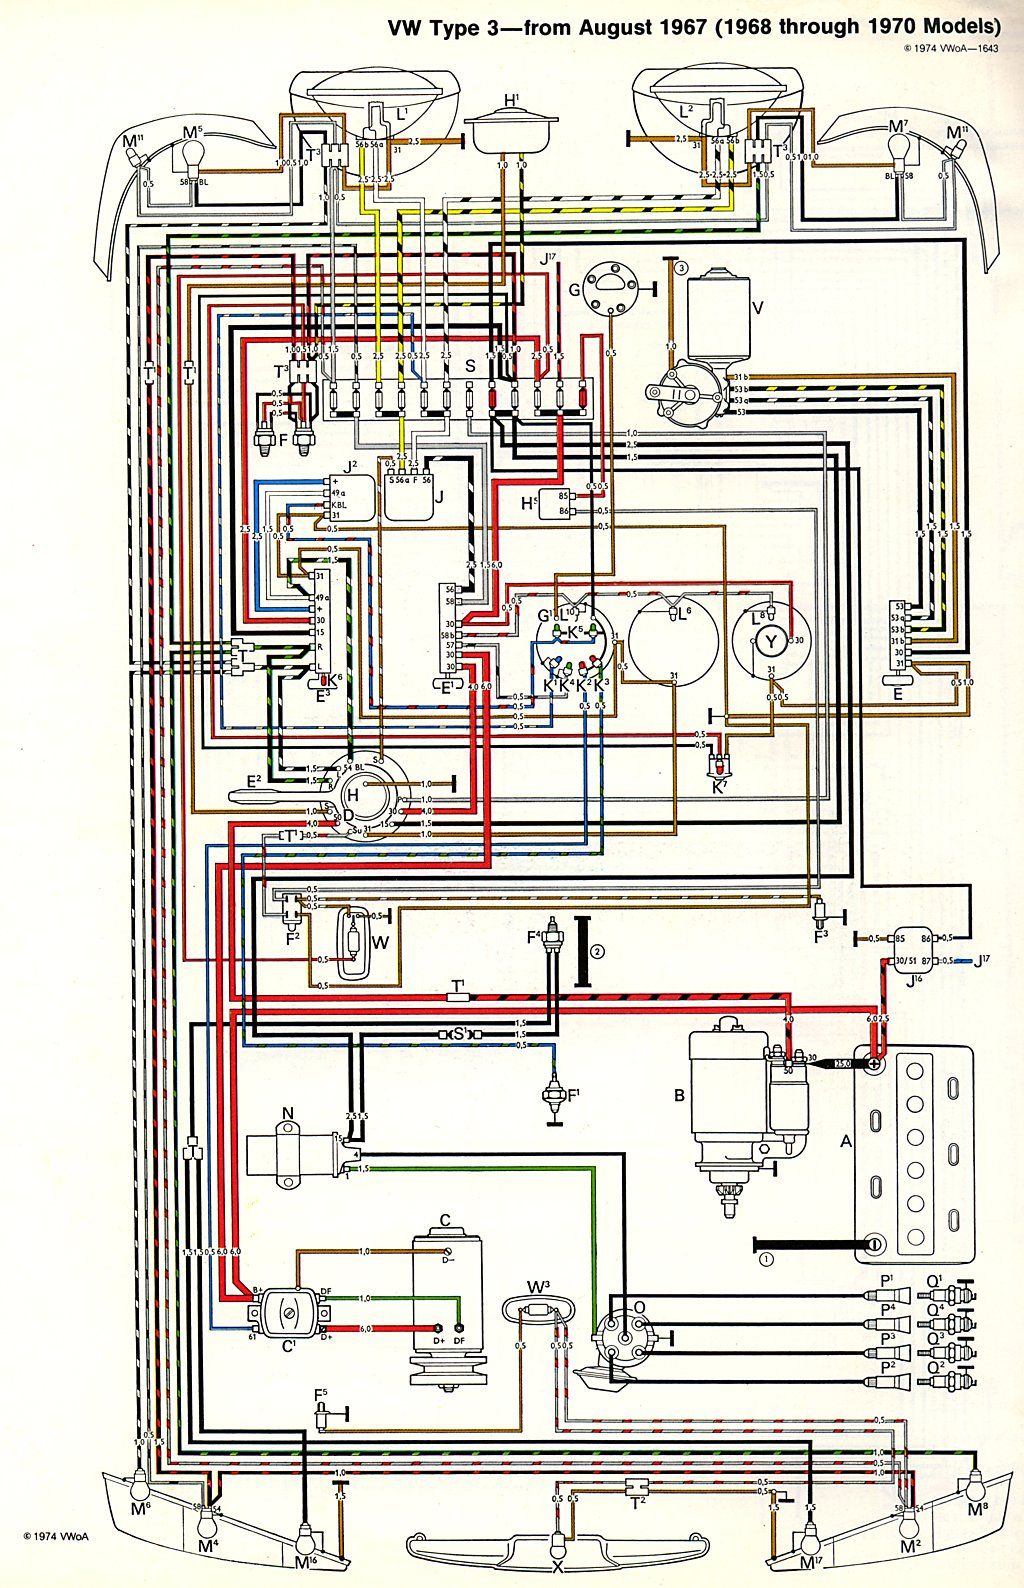 type3_6870 vw type 3 wiring diagram vw wiring diagrams free downloads \u2022 free vw type 3 wiring harness at fashall.co